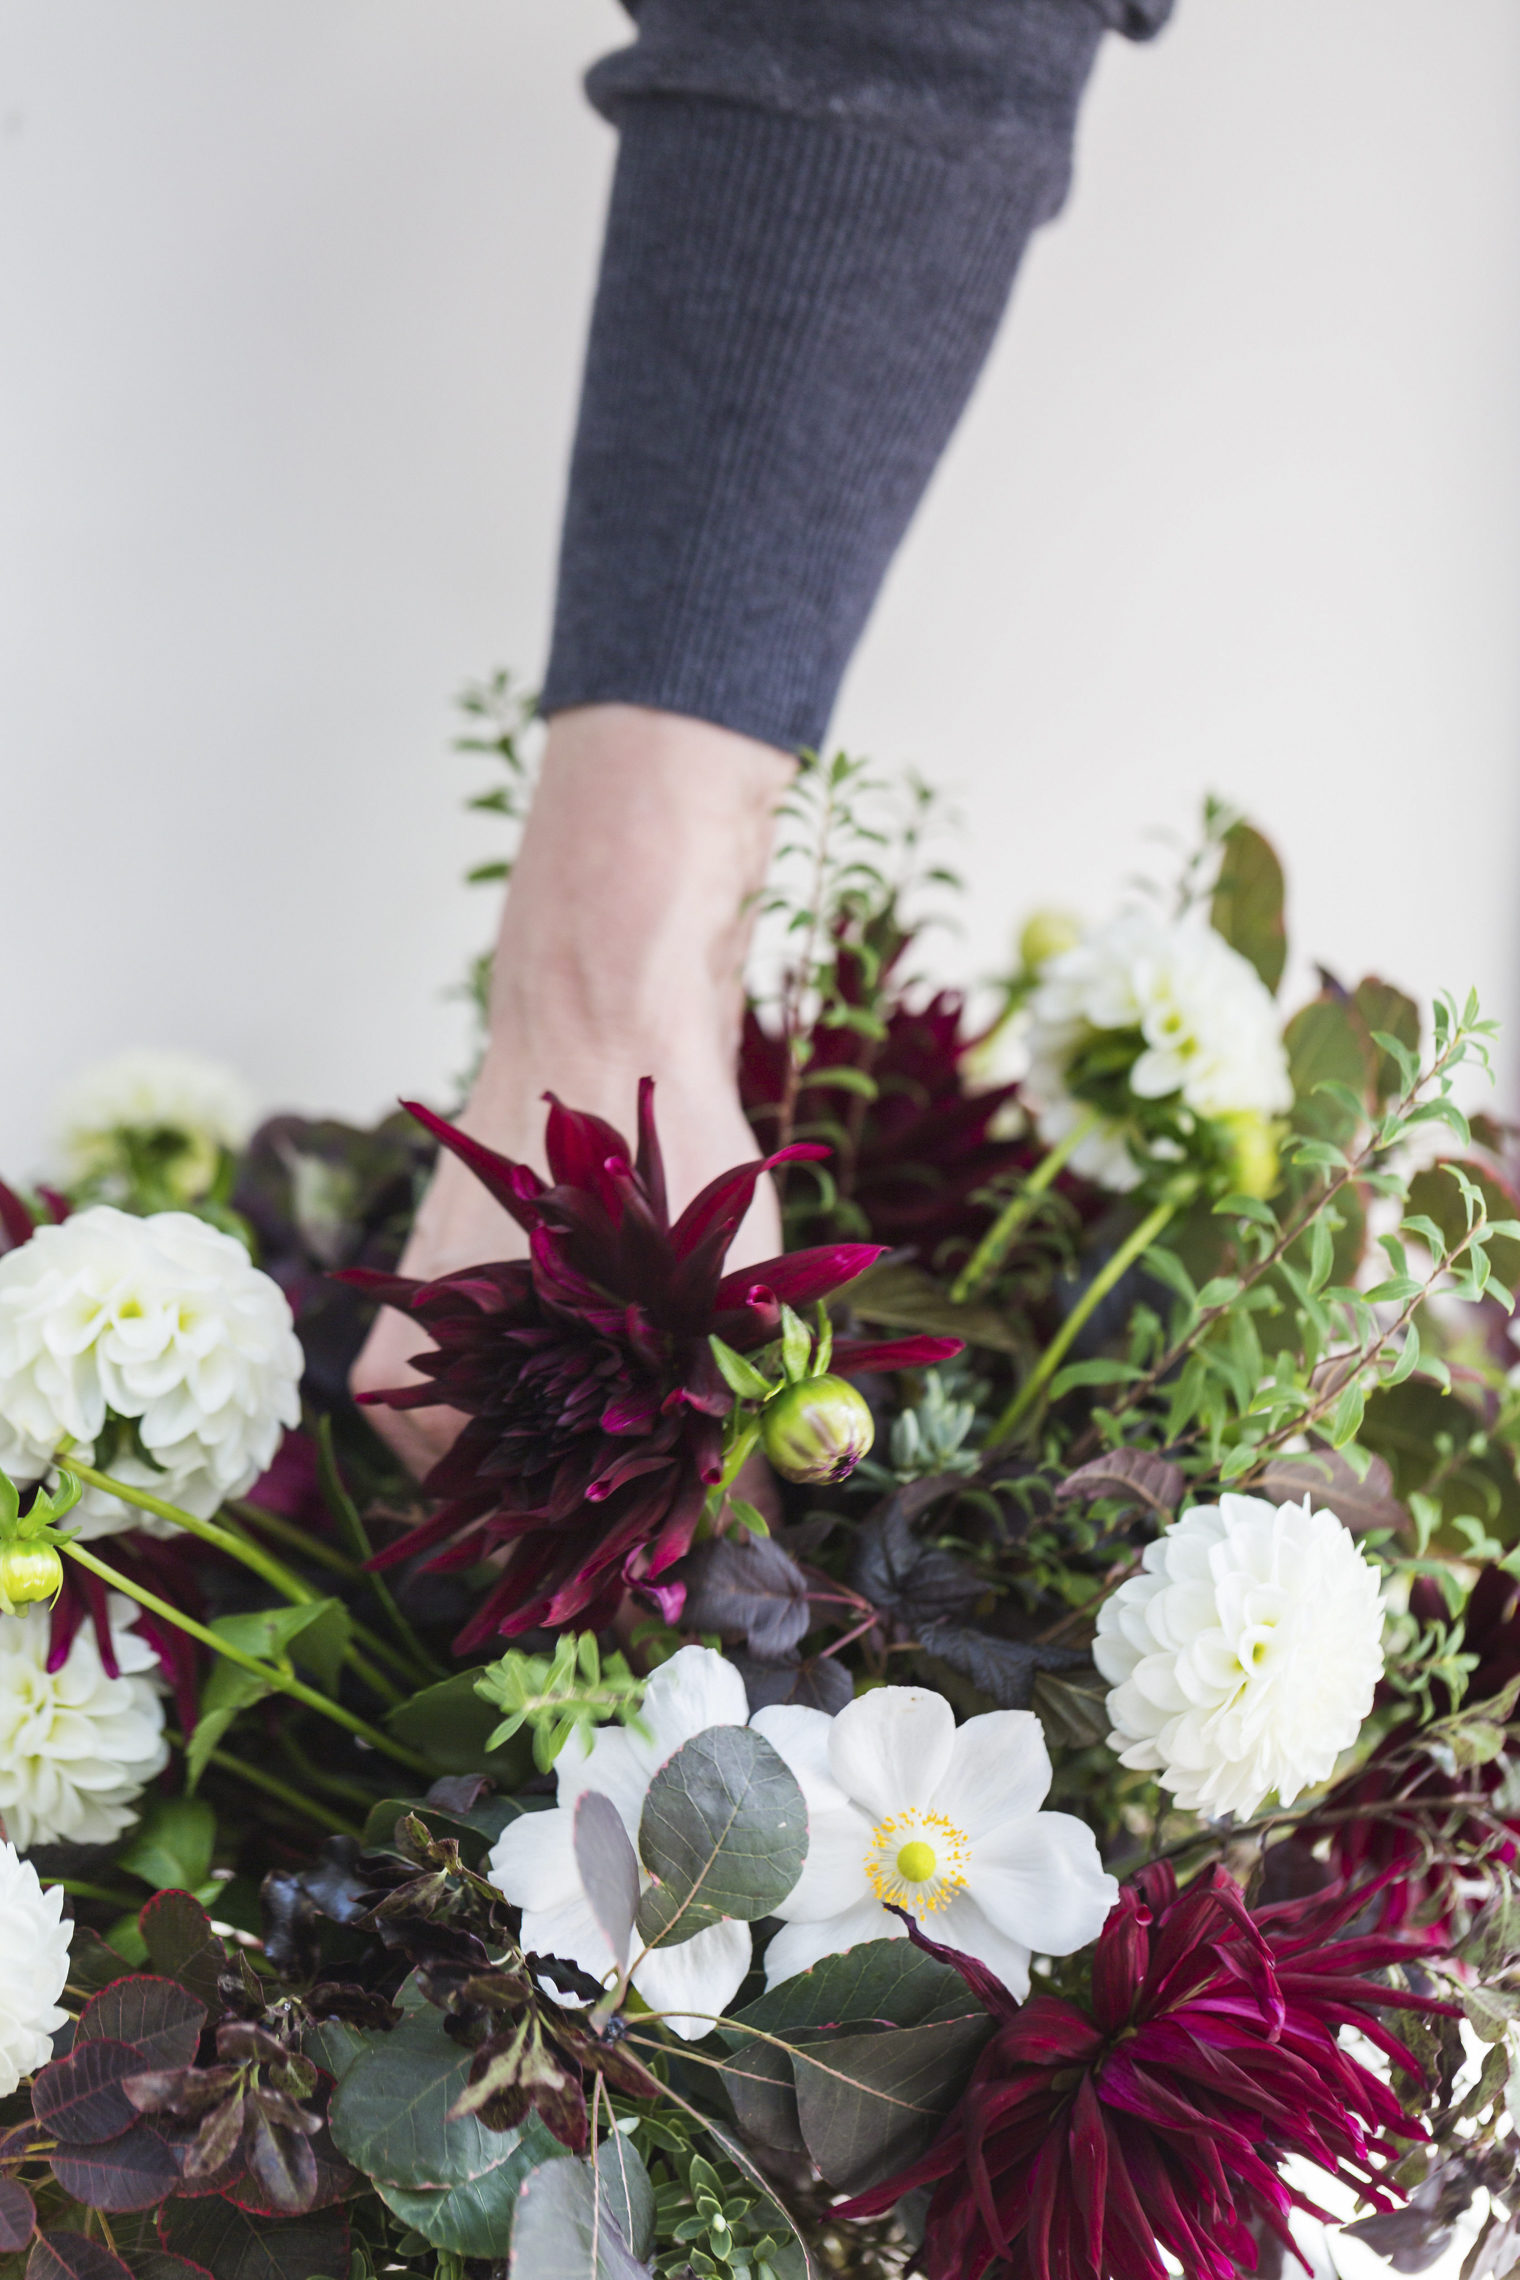 My Career Story - From Corporate Training to Floristry